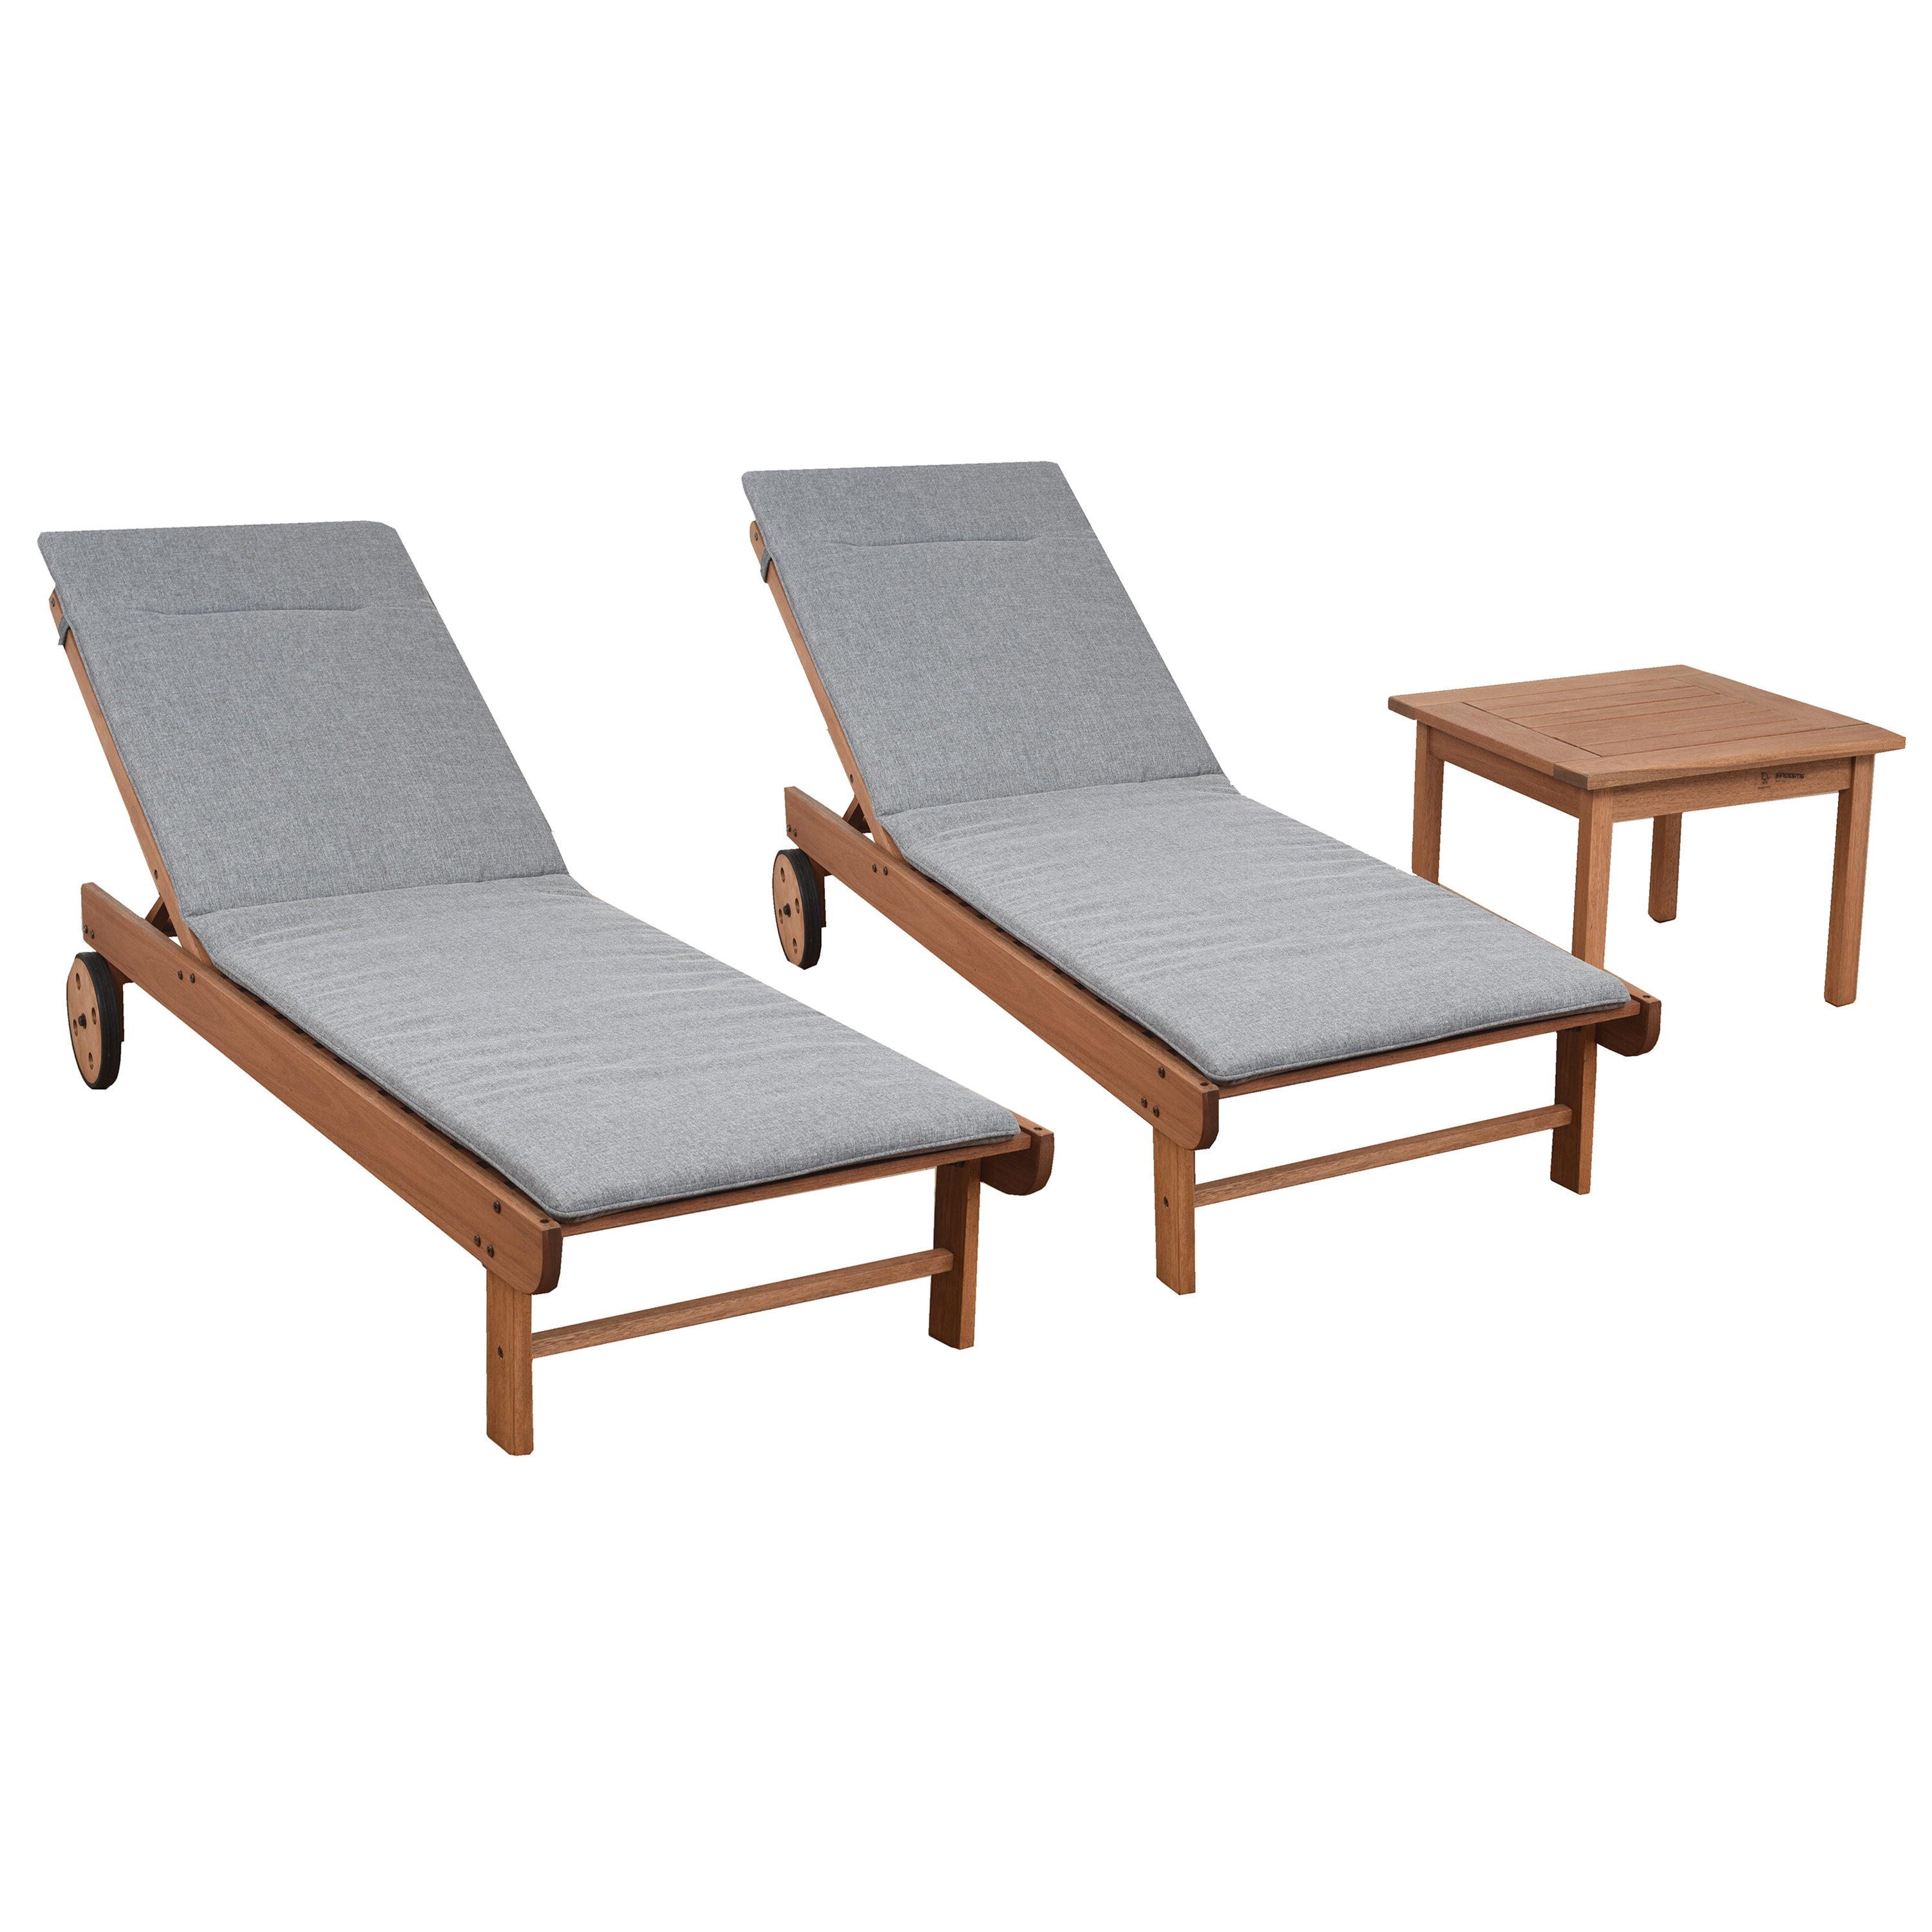 Well Known Brighton Gray Cushion Patio 3 Piece Single Reclining Chaise Lounge Set With  Table For Outdoor 3 Piece Chaise Lounger Sets With Table (Gallery 6 of 25)